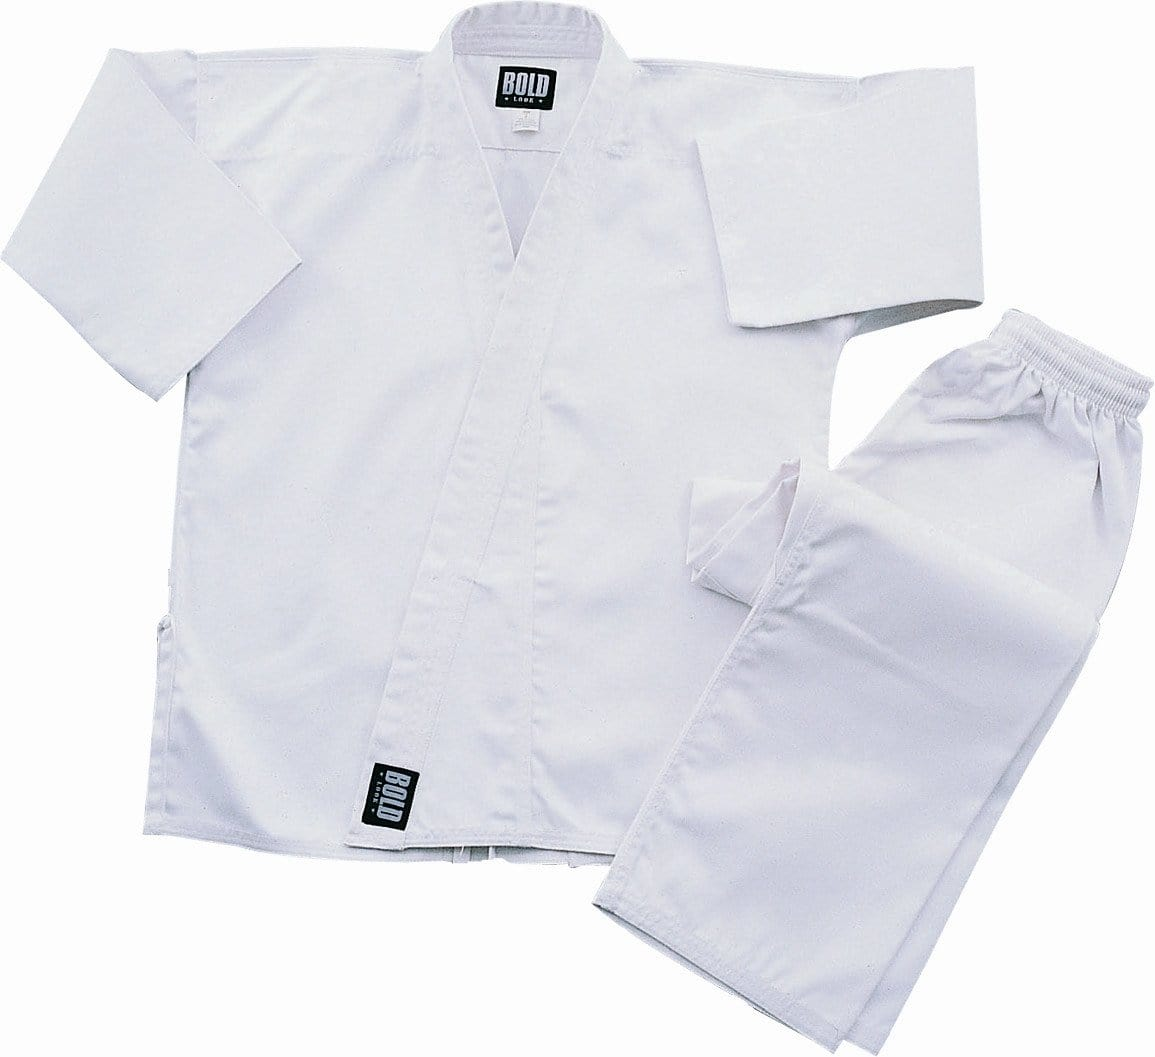 White Heavyweight 12oz Brushed Cotton Karate Uniform by Bold 550w